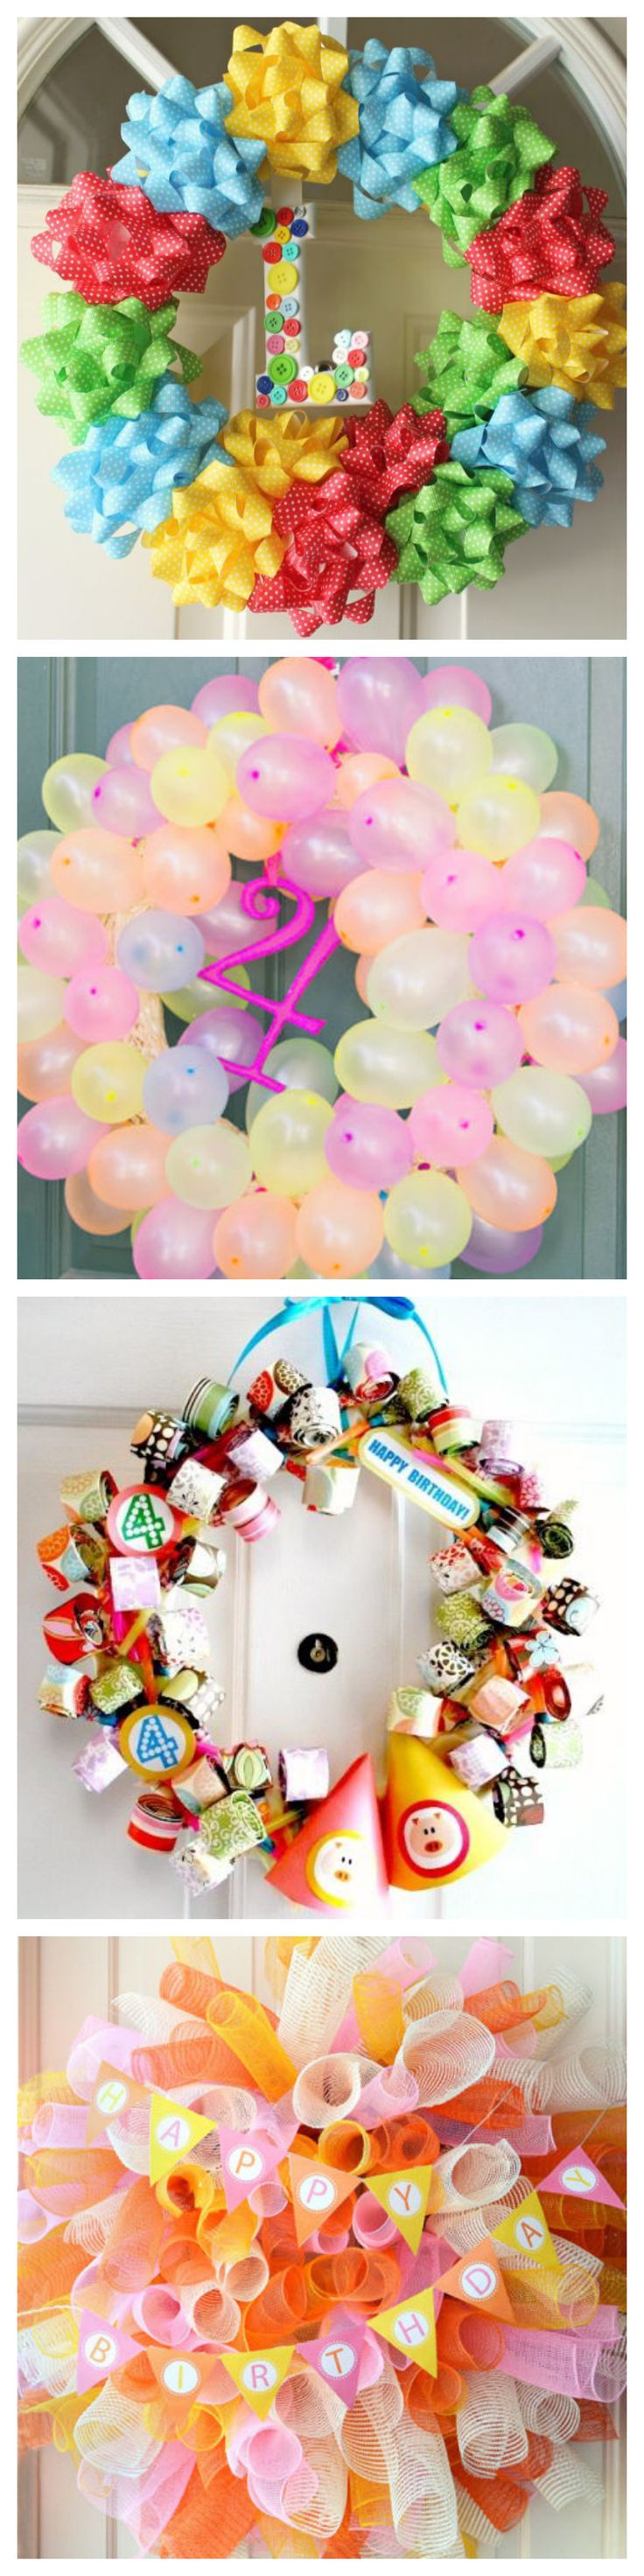 birthday present craft ideas best 25 birthday presents ideas on 3457